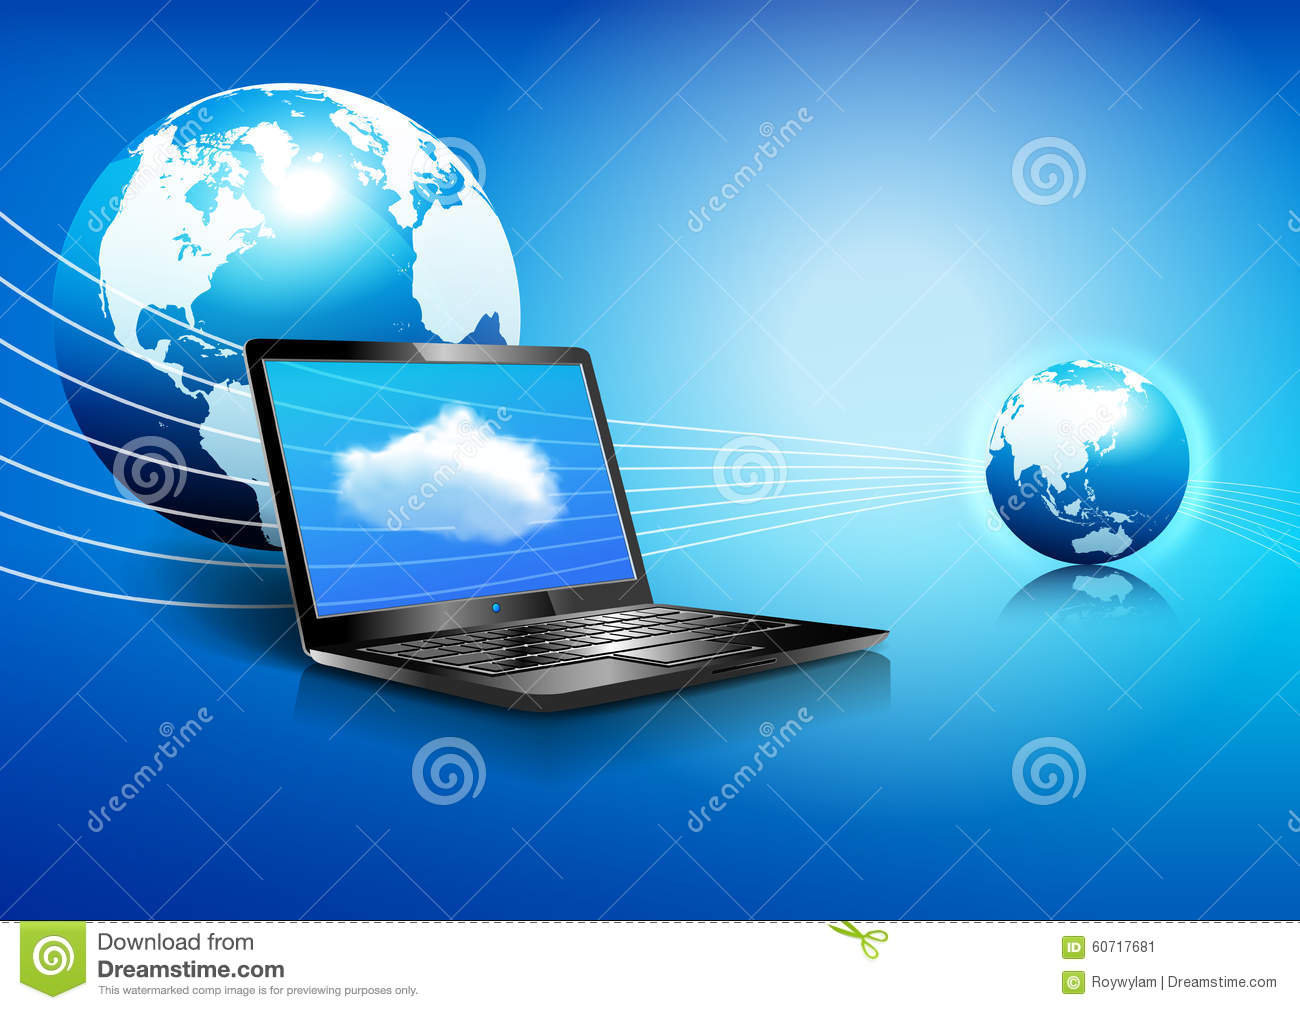 laptop cloud computing global digital communication world